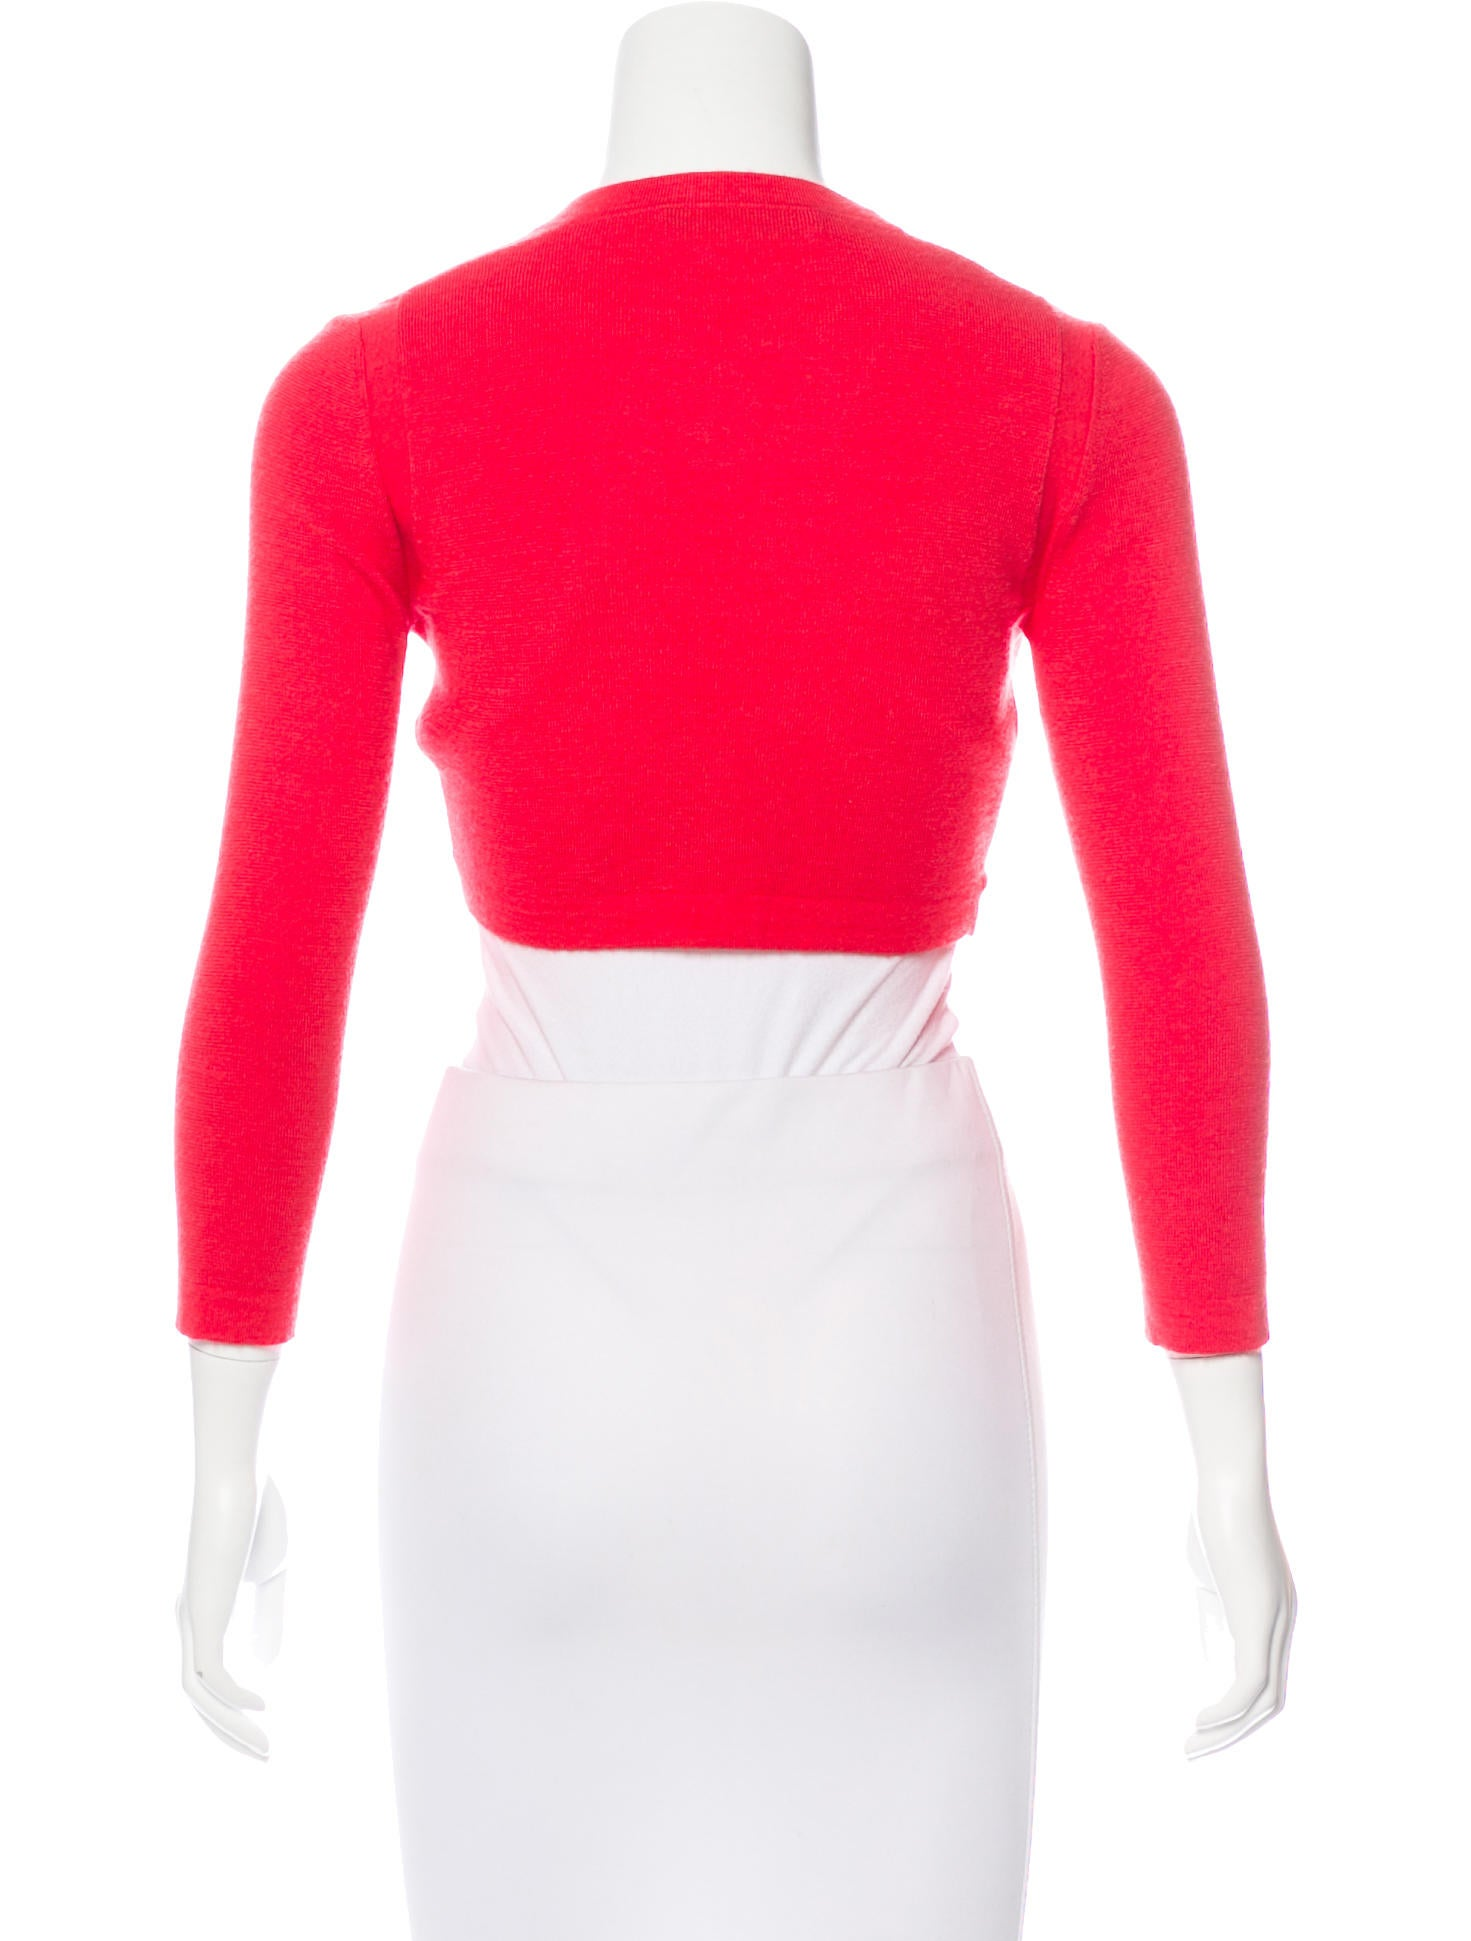 Carolina herrera cashmere cropped cardigan clothing Cao open source